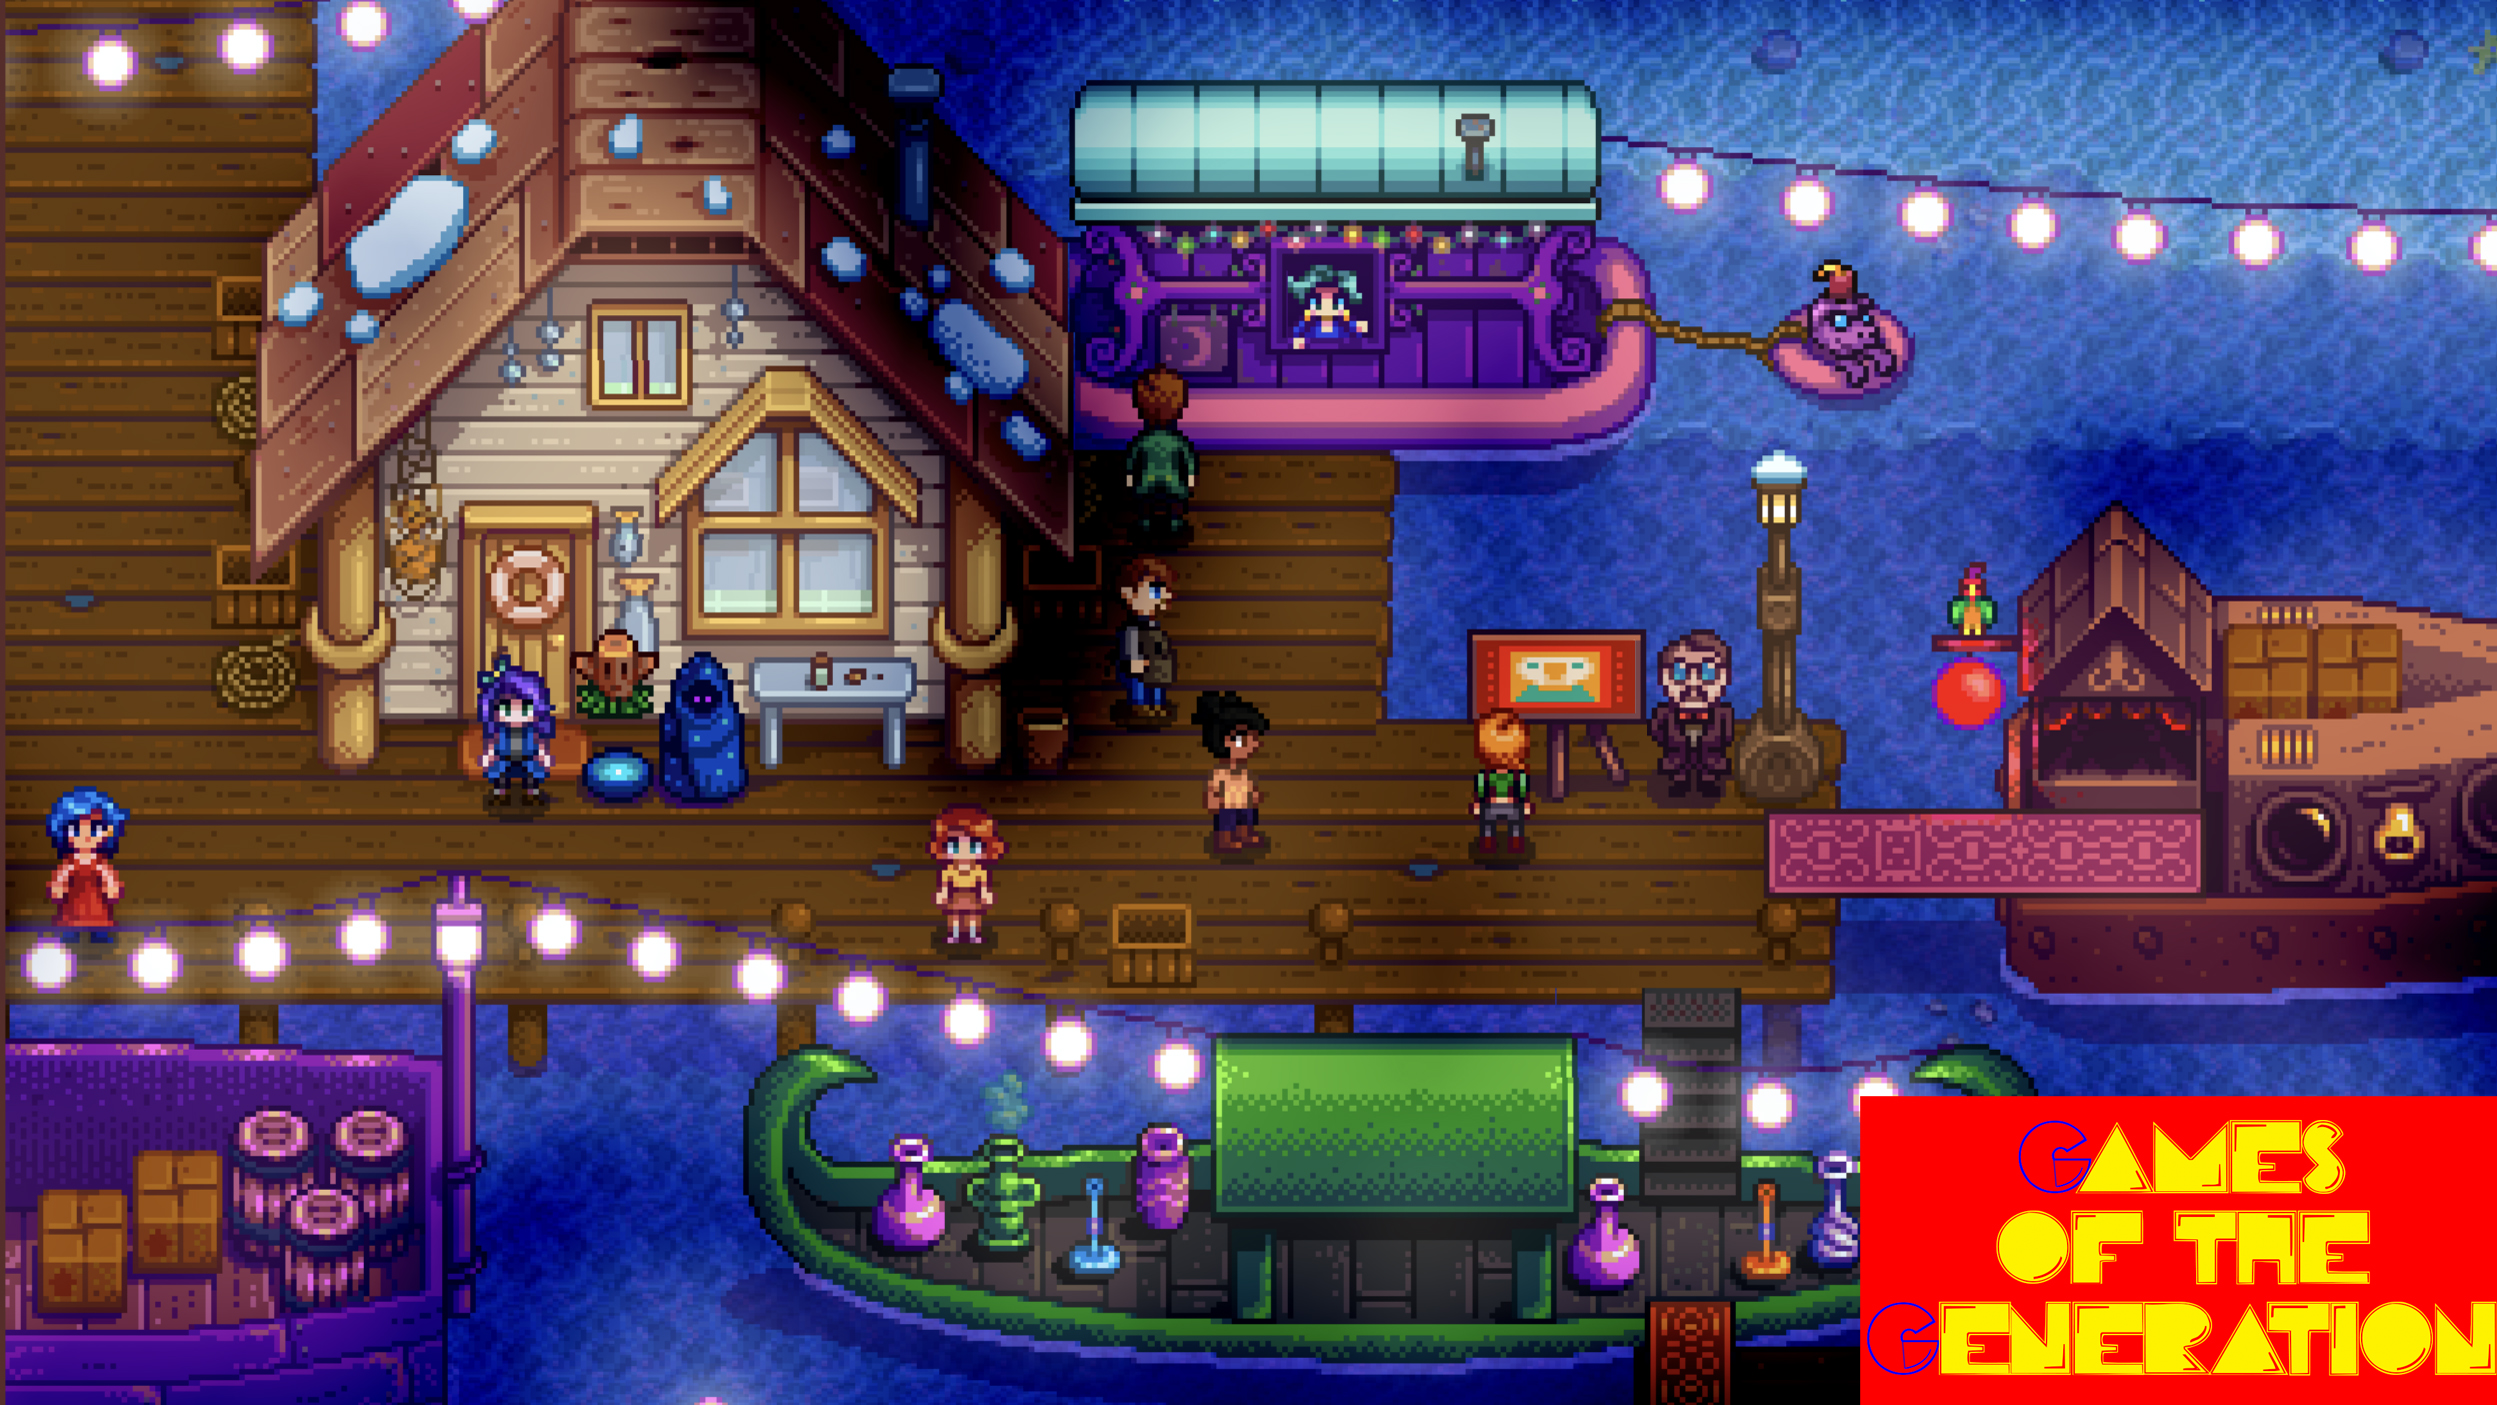 Games of the Generation: Stardew Valley is a welcome break from the chaos of the world thumbnail